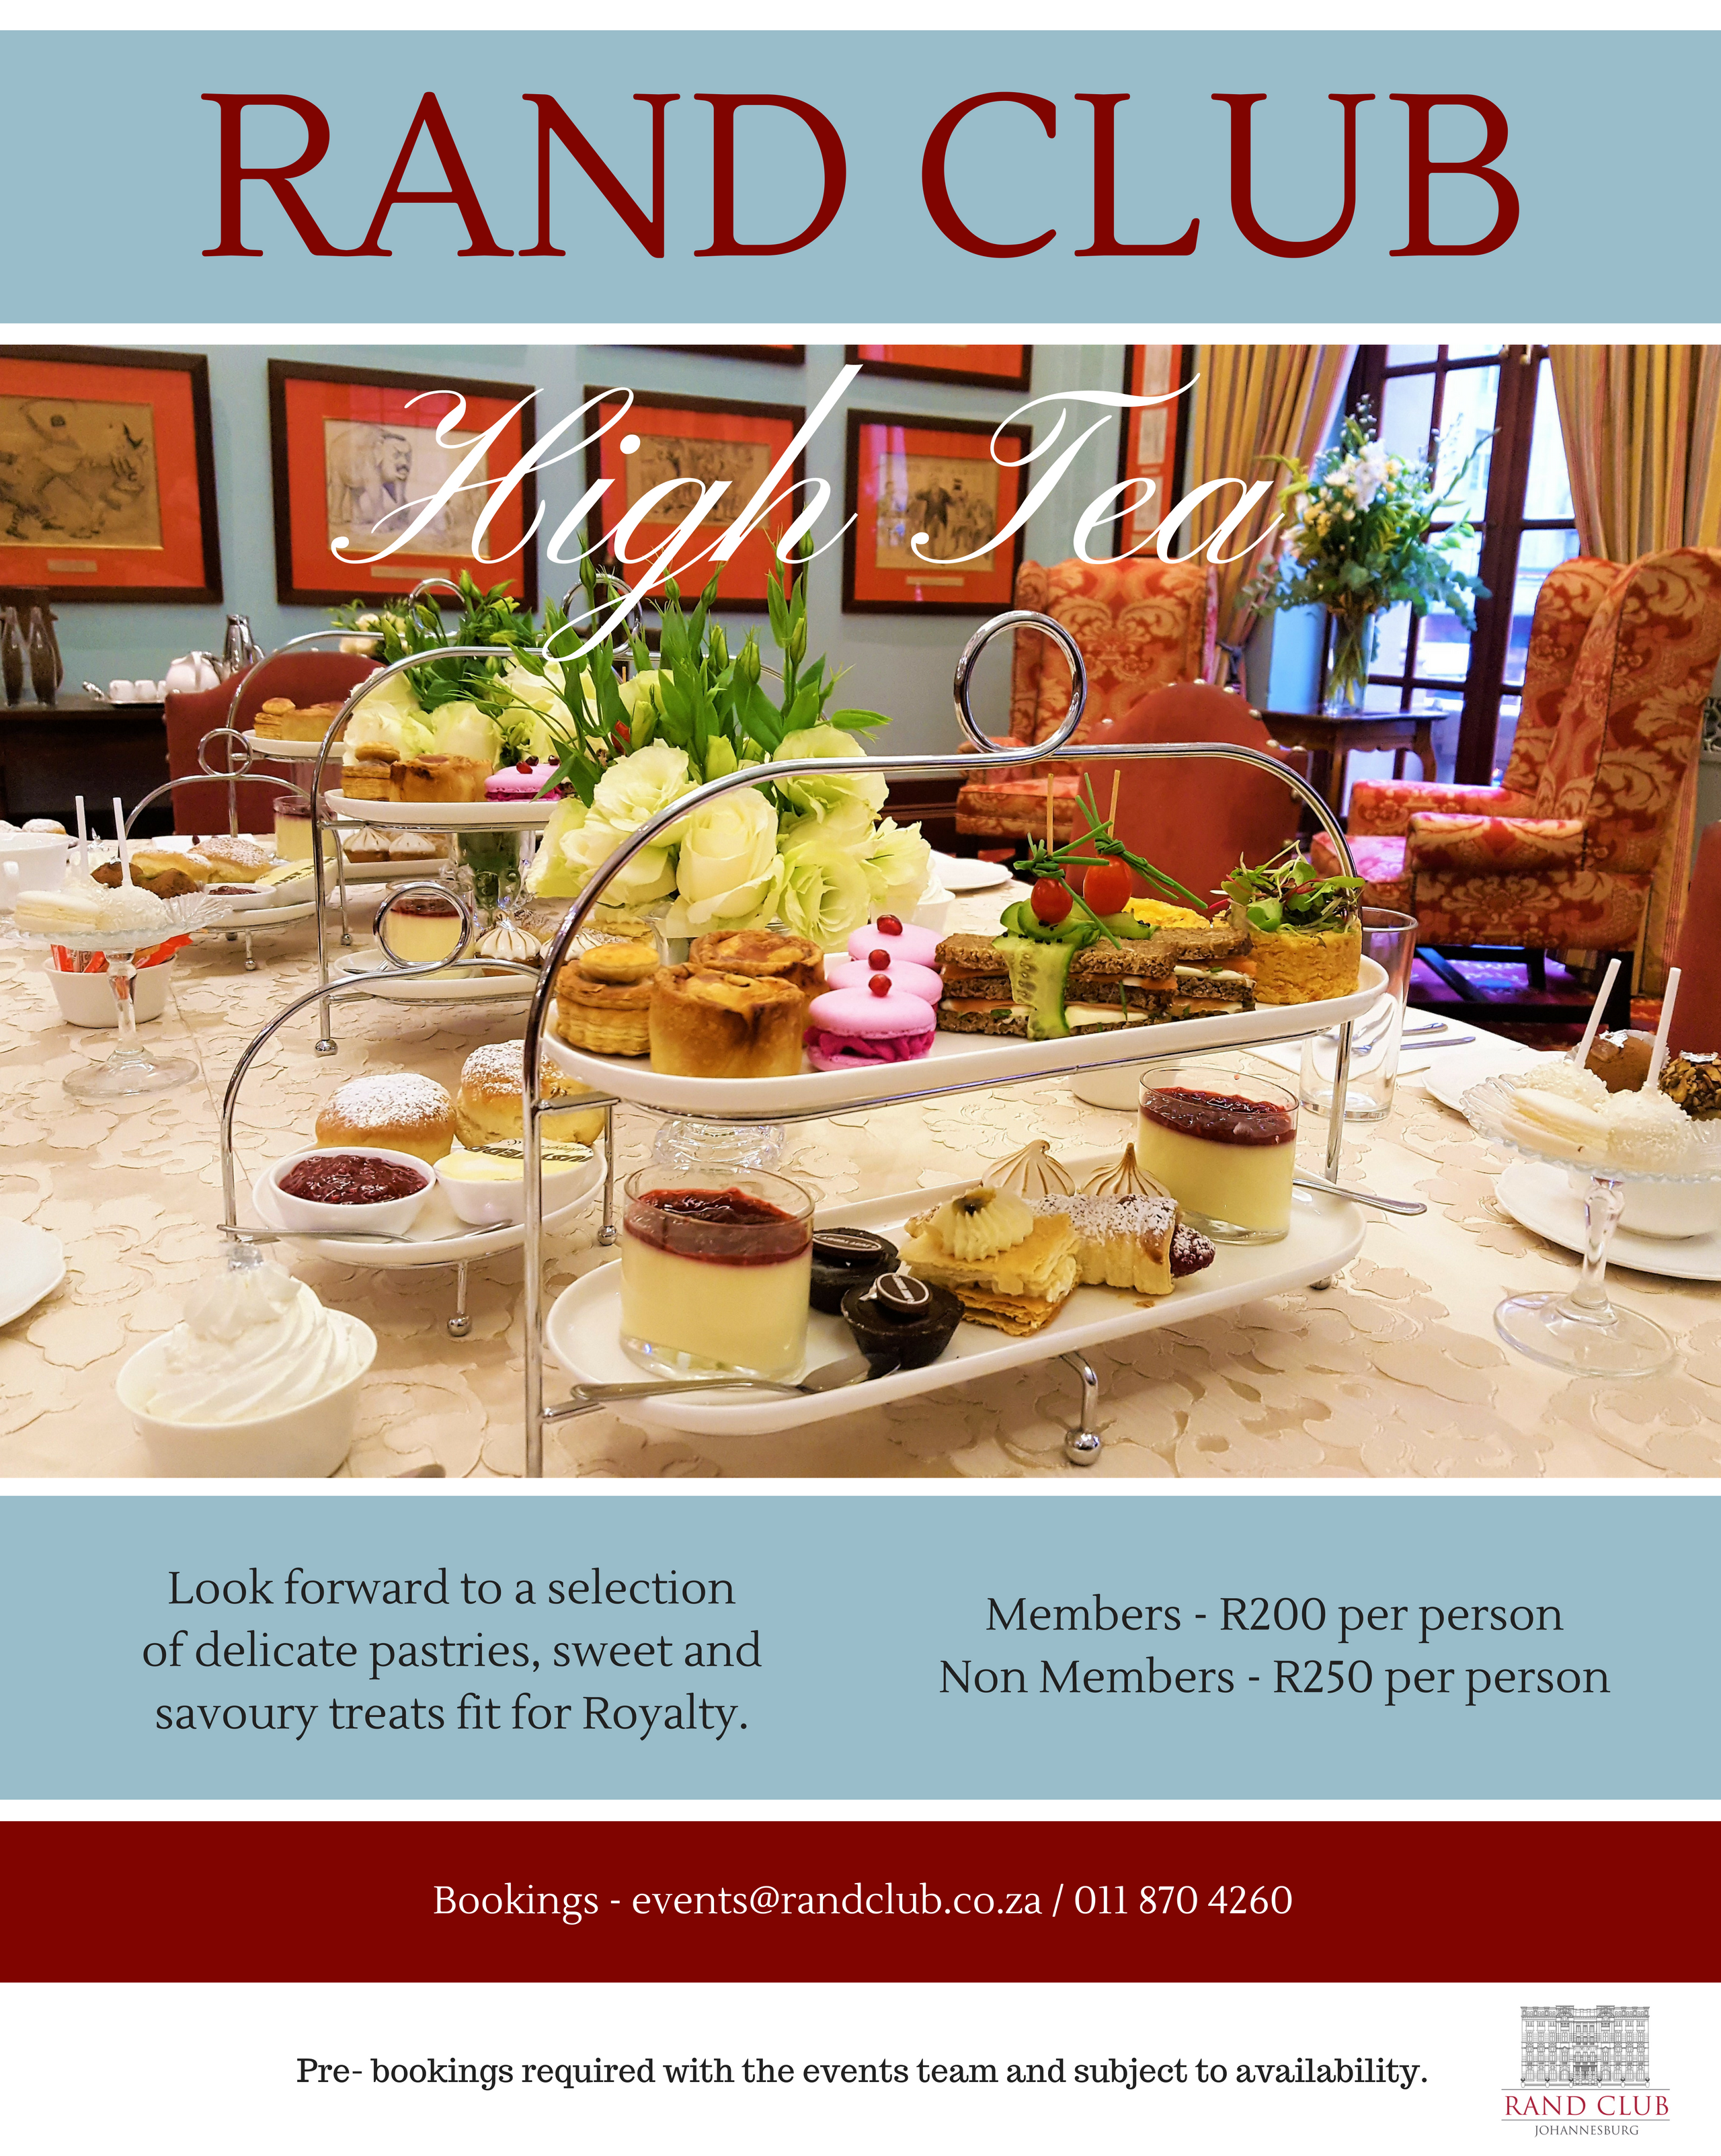 High Tea at Rand Club